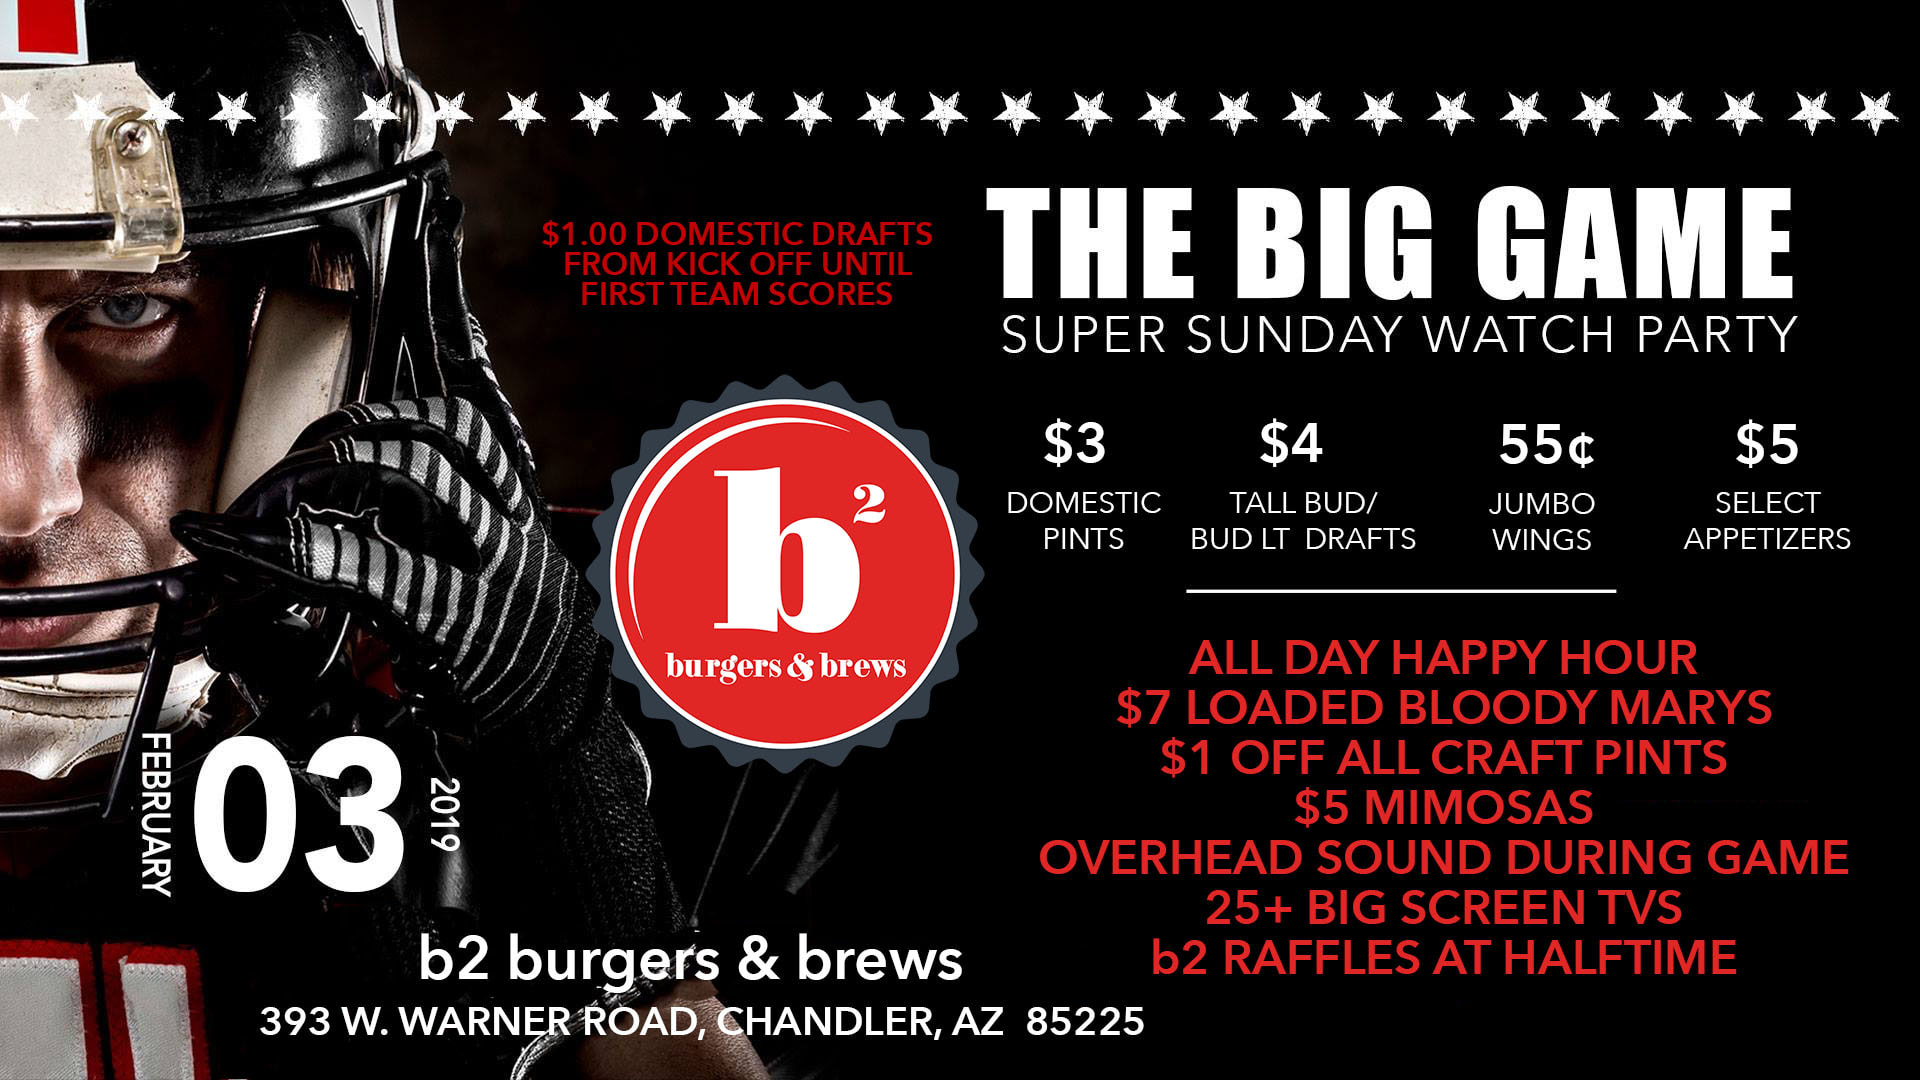 B2's Big Game Super Sunday Watch Party